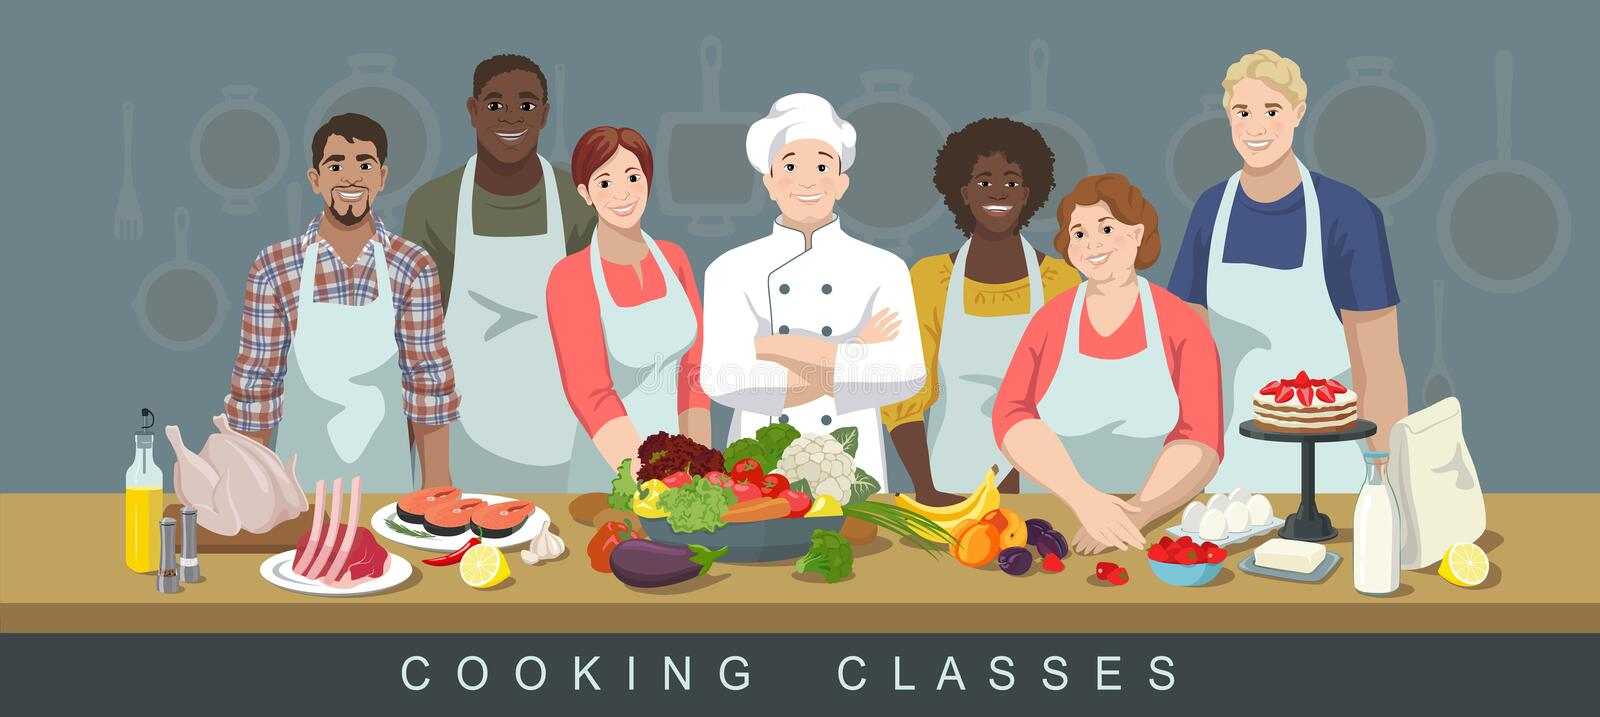 Cooking classes 3 royalty free illustration